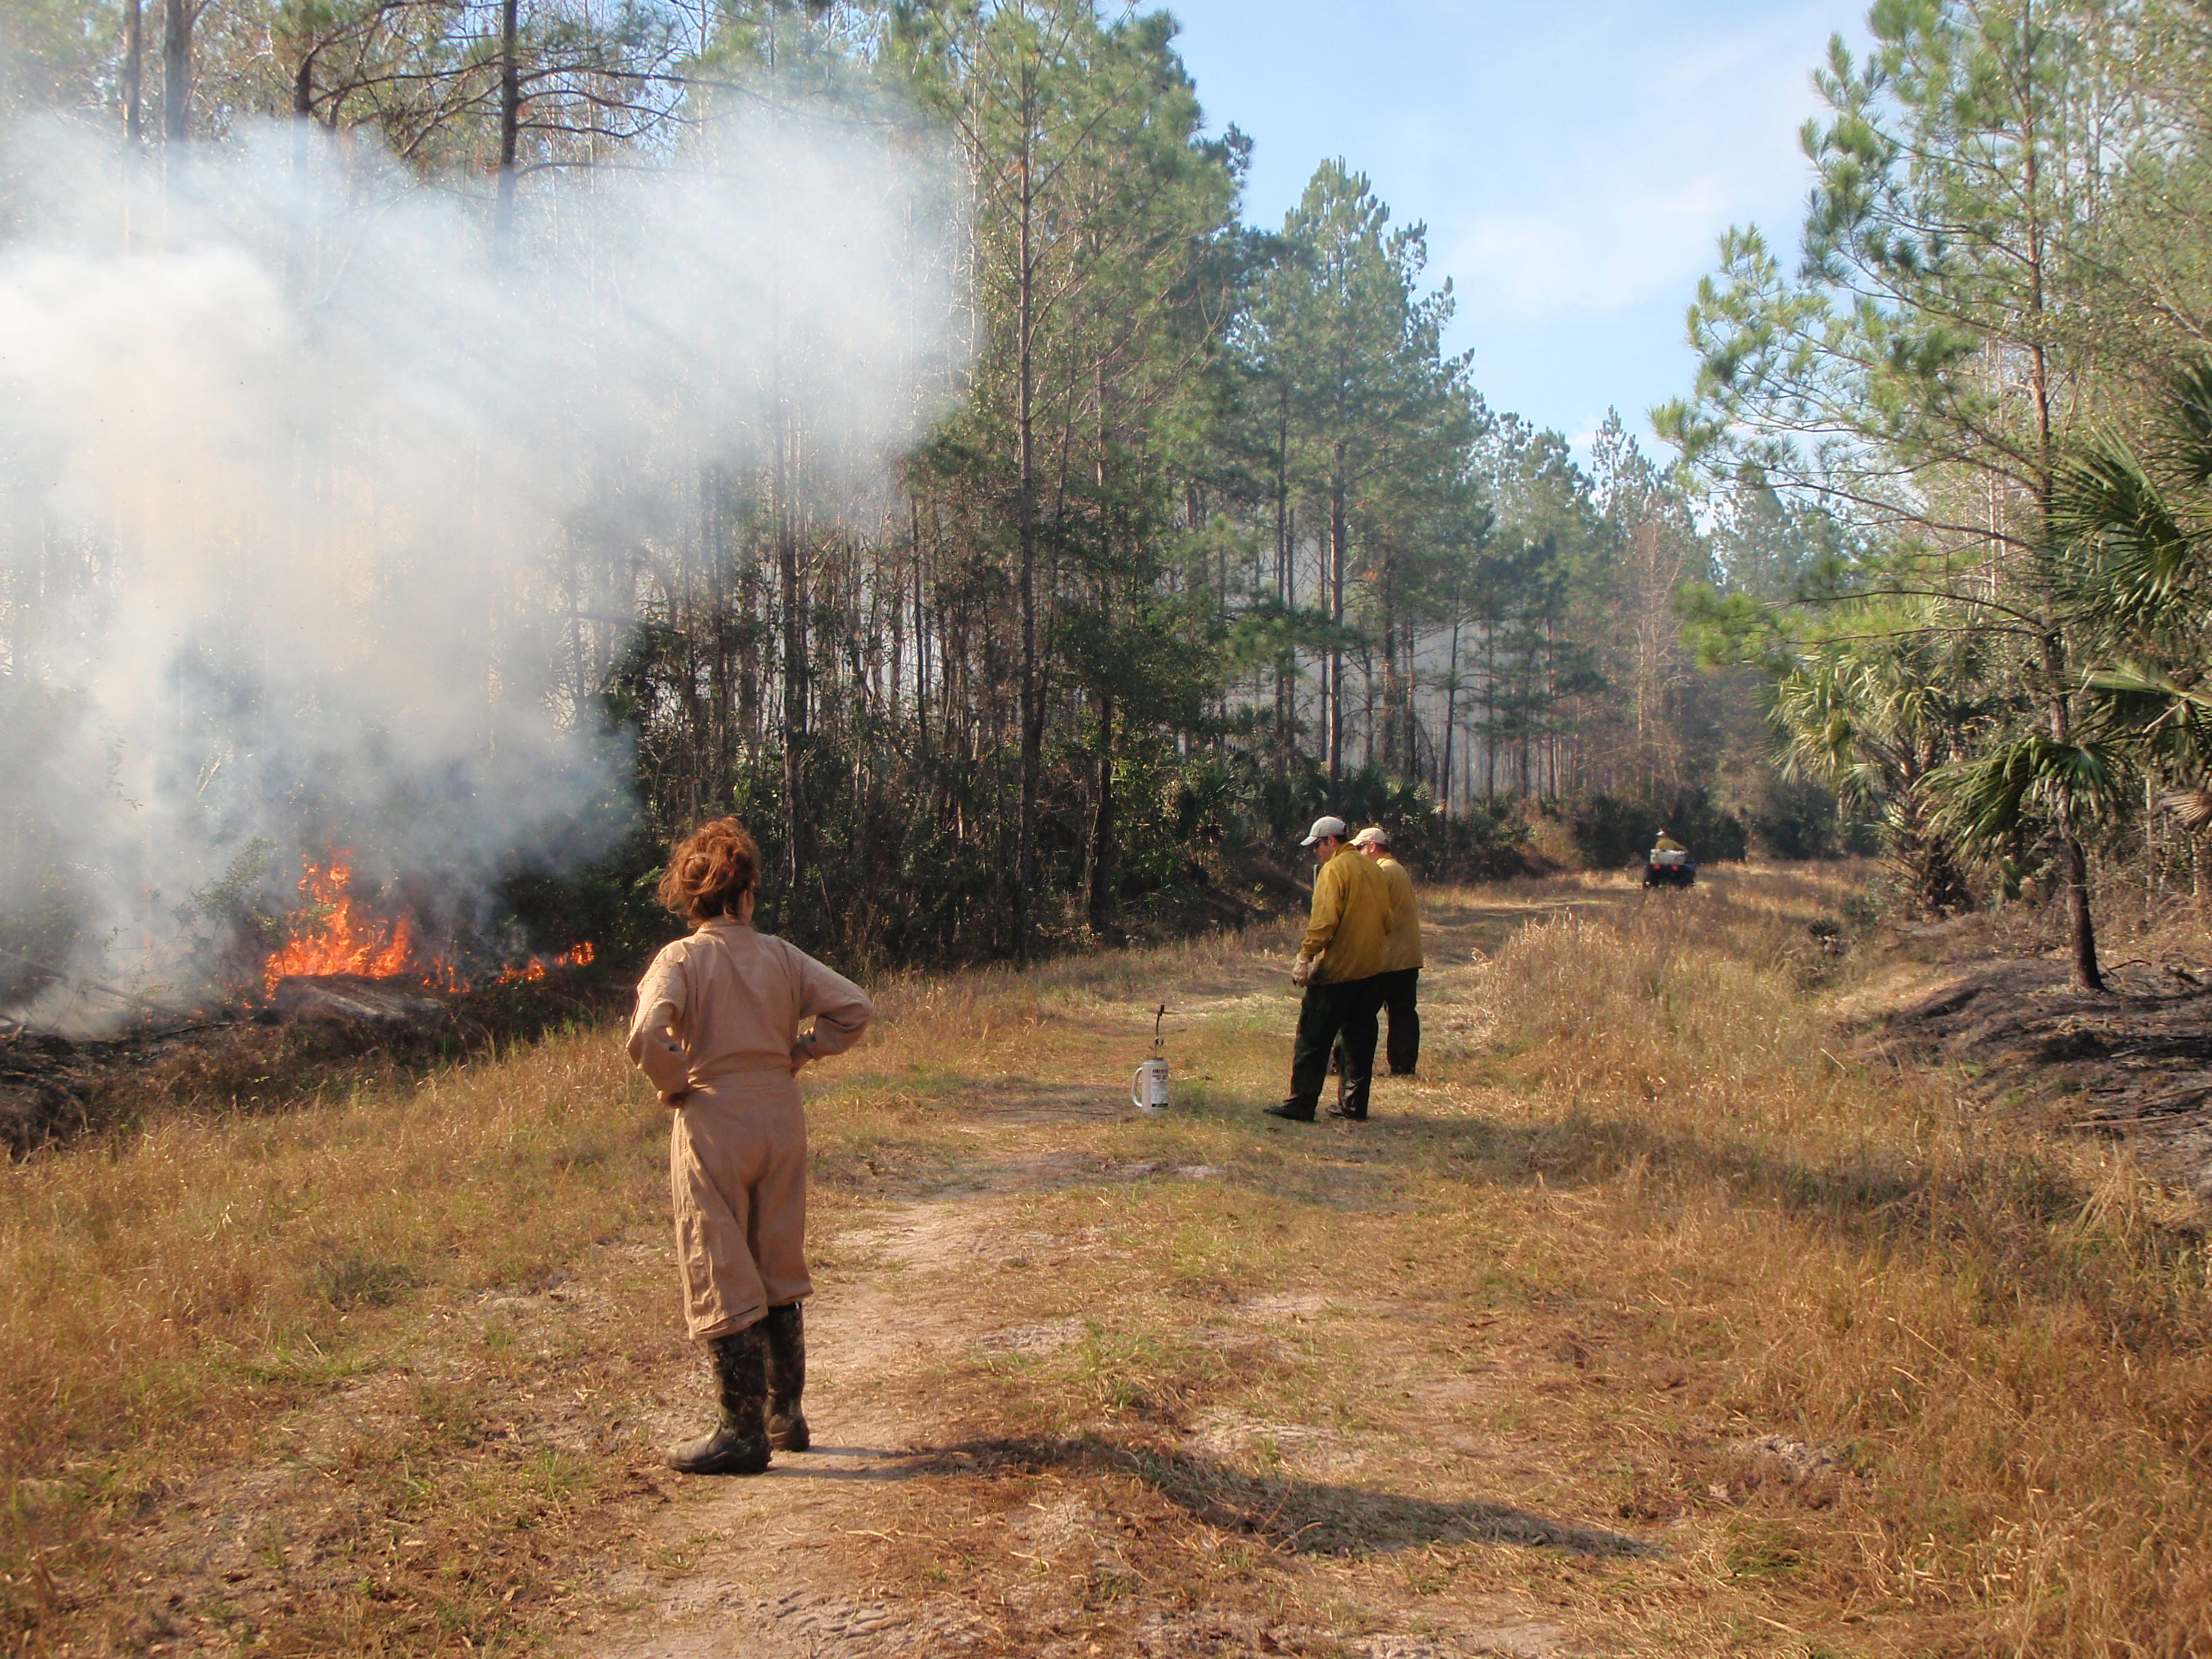 A 2015 prescribed burn in a 22 year old first thinned pine stand. This is a fuel reduction burn conducted in the winter preparatory to in ensuing years conducting growing season burns which will mimic the natural fire cycle.